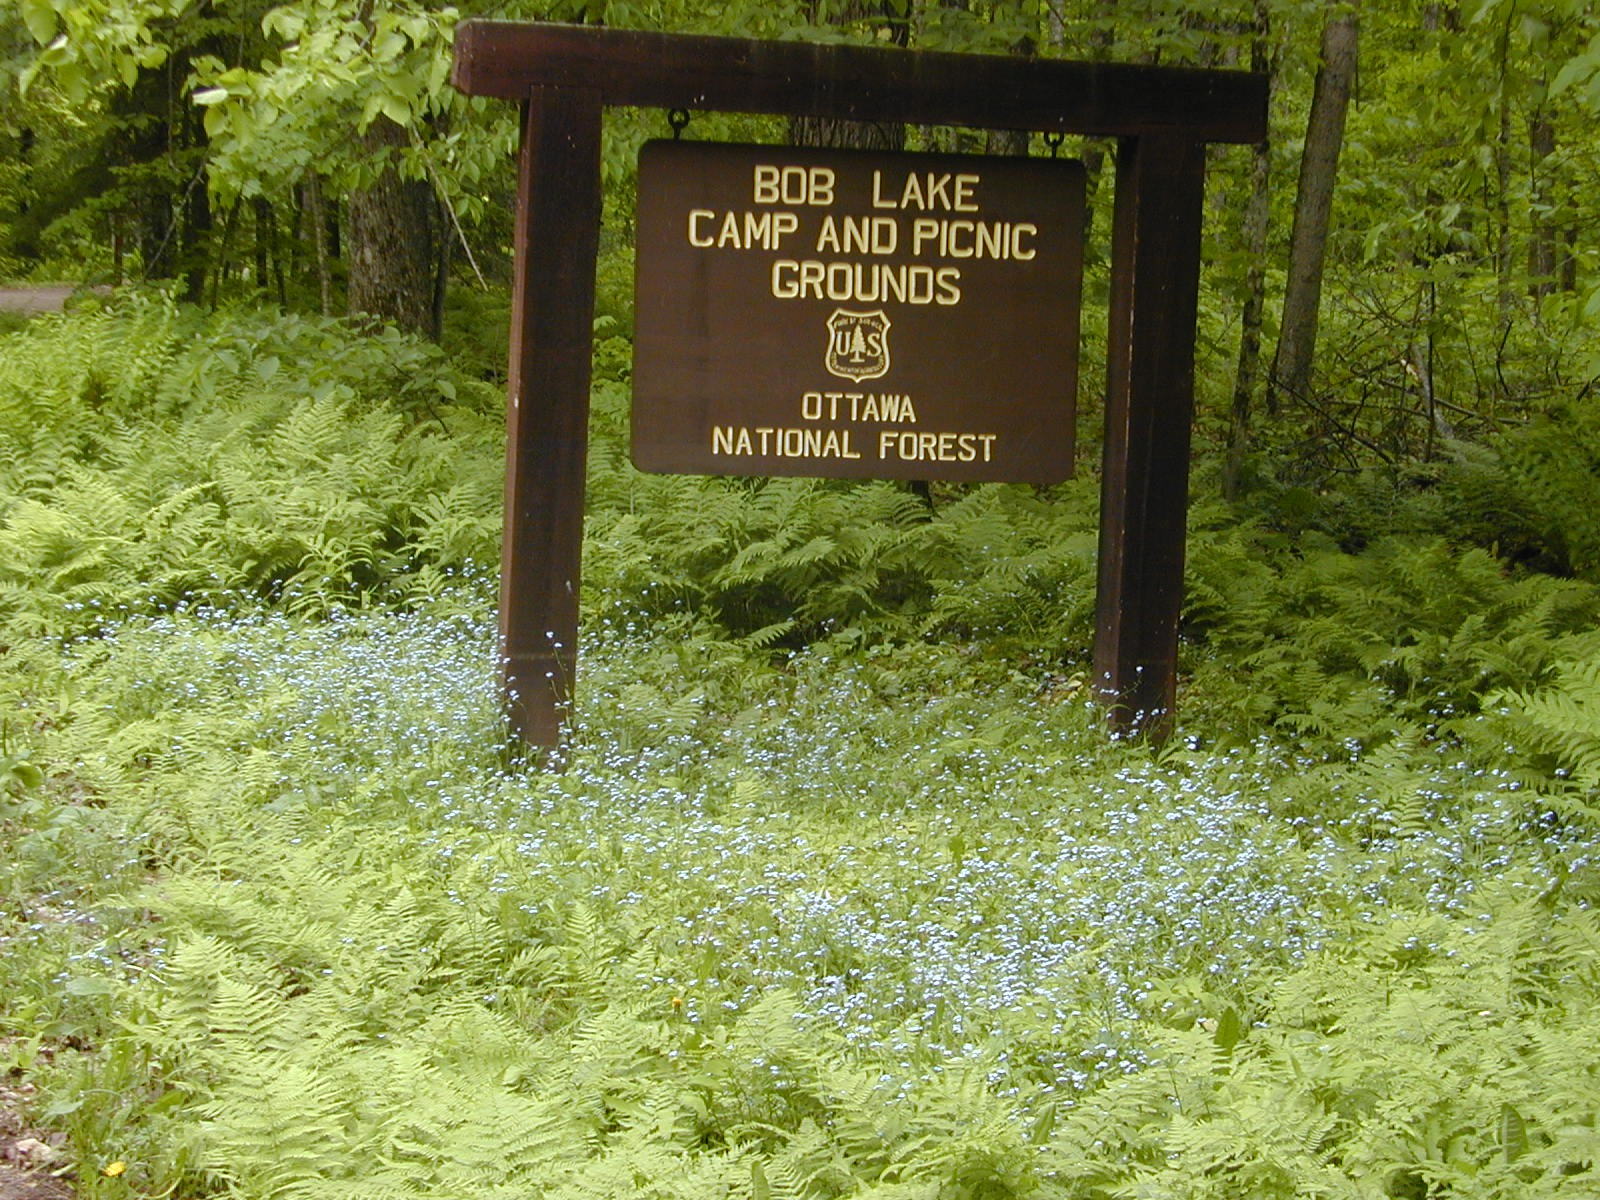 Sign for Bob Lake Campground